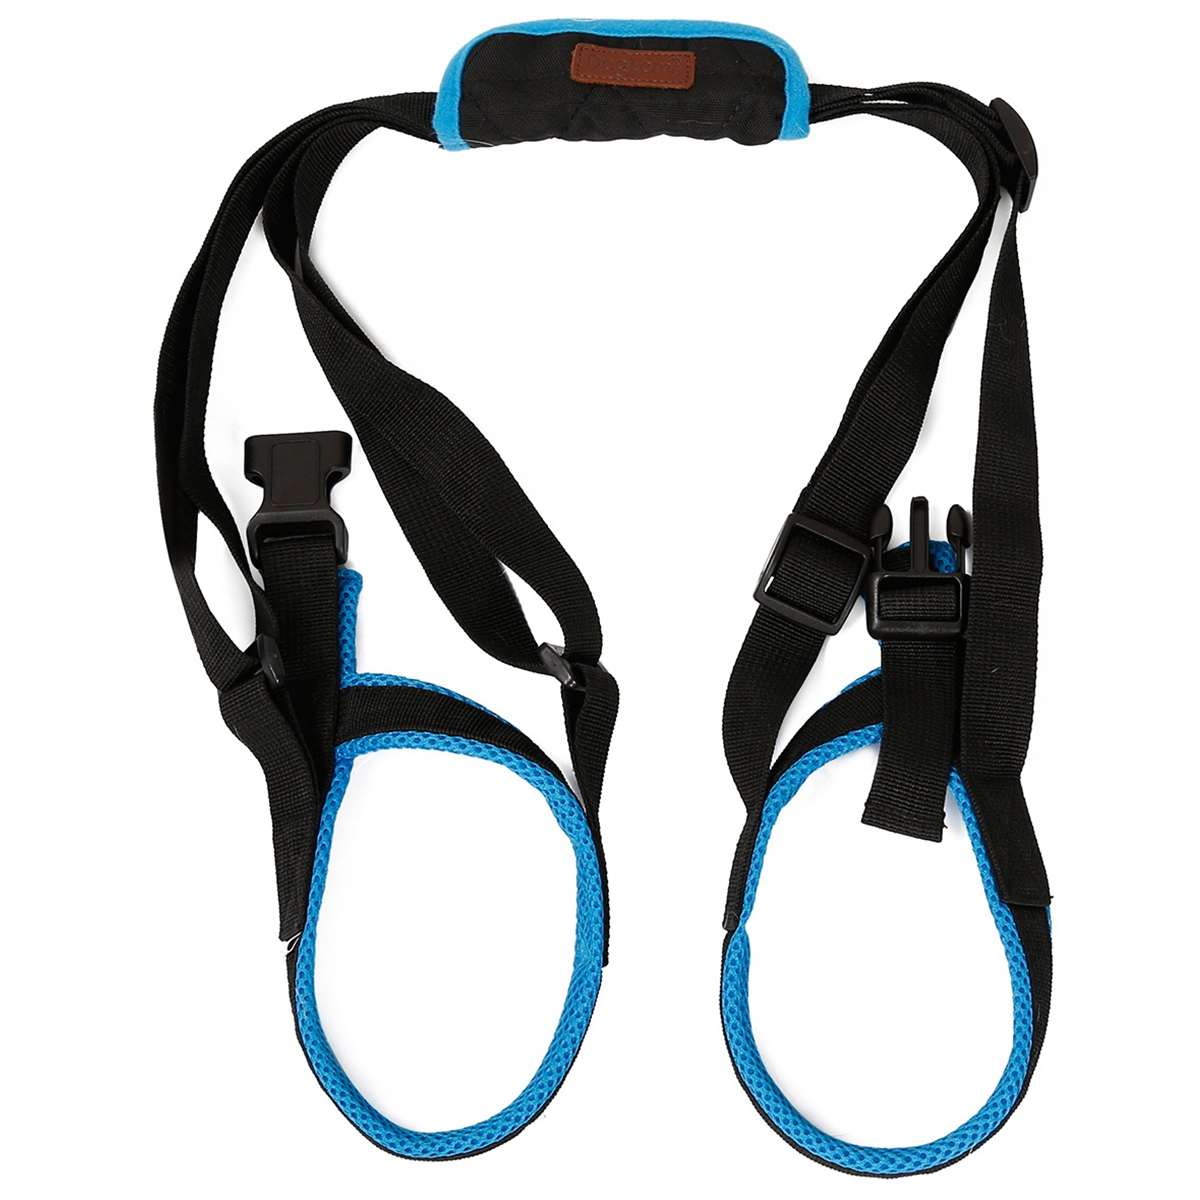 Hot Doglemi font b Pet b font Dogs Aid Assist Tool Adjustable Dog Lift Harness For